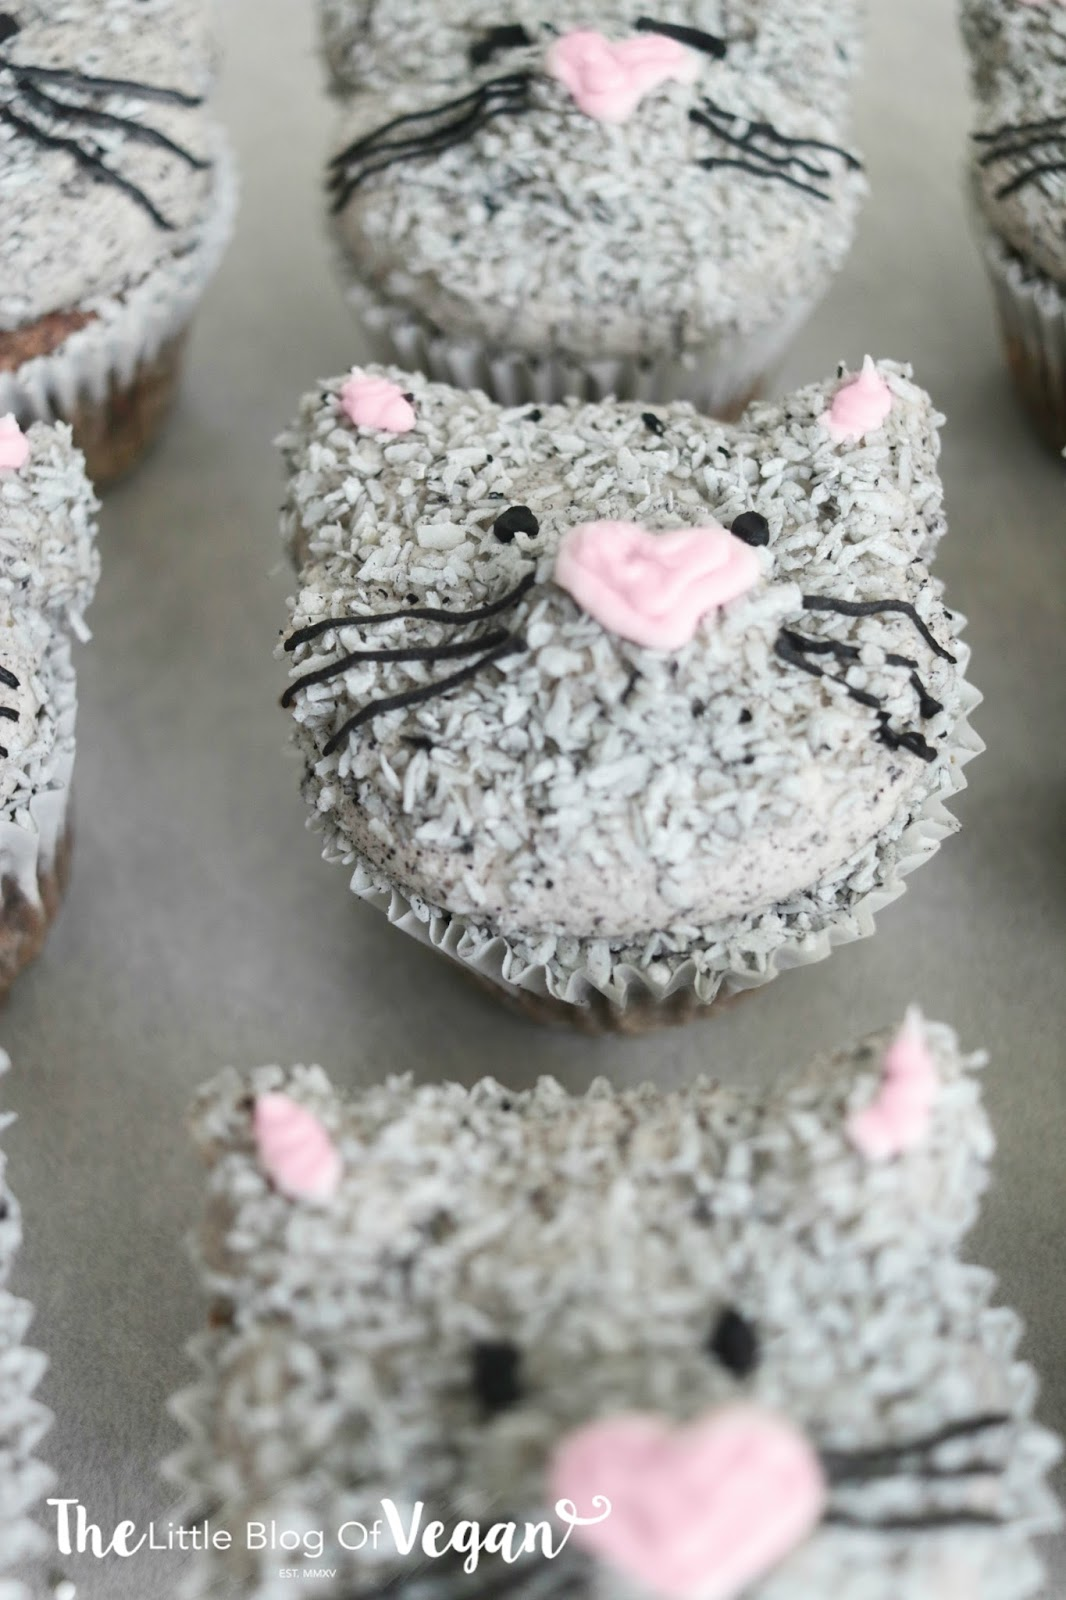 I Made These Cakes As Its My Cat Tiggs Birthday This Week Hell Be 16 Even Though Hes Old For A He Still Plays And Acts Like Kitten